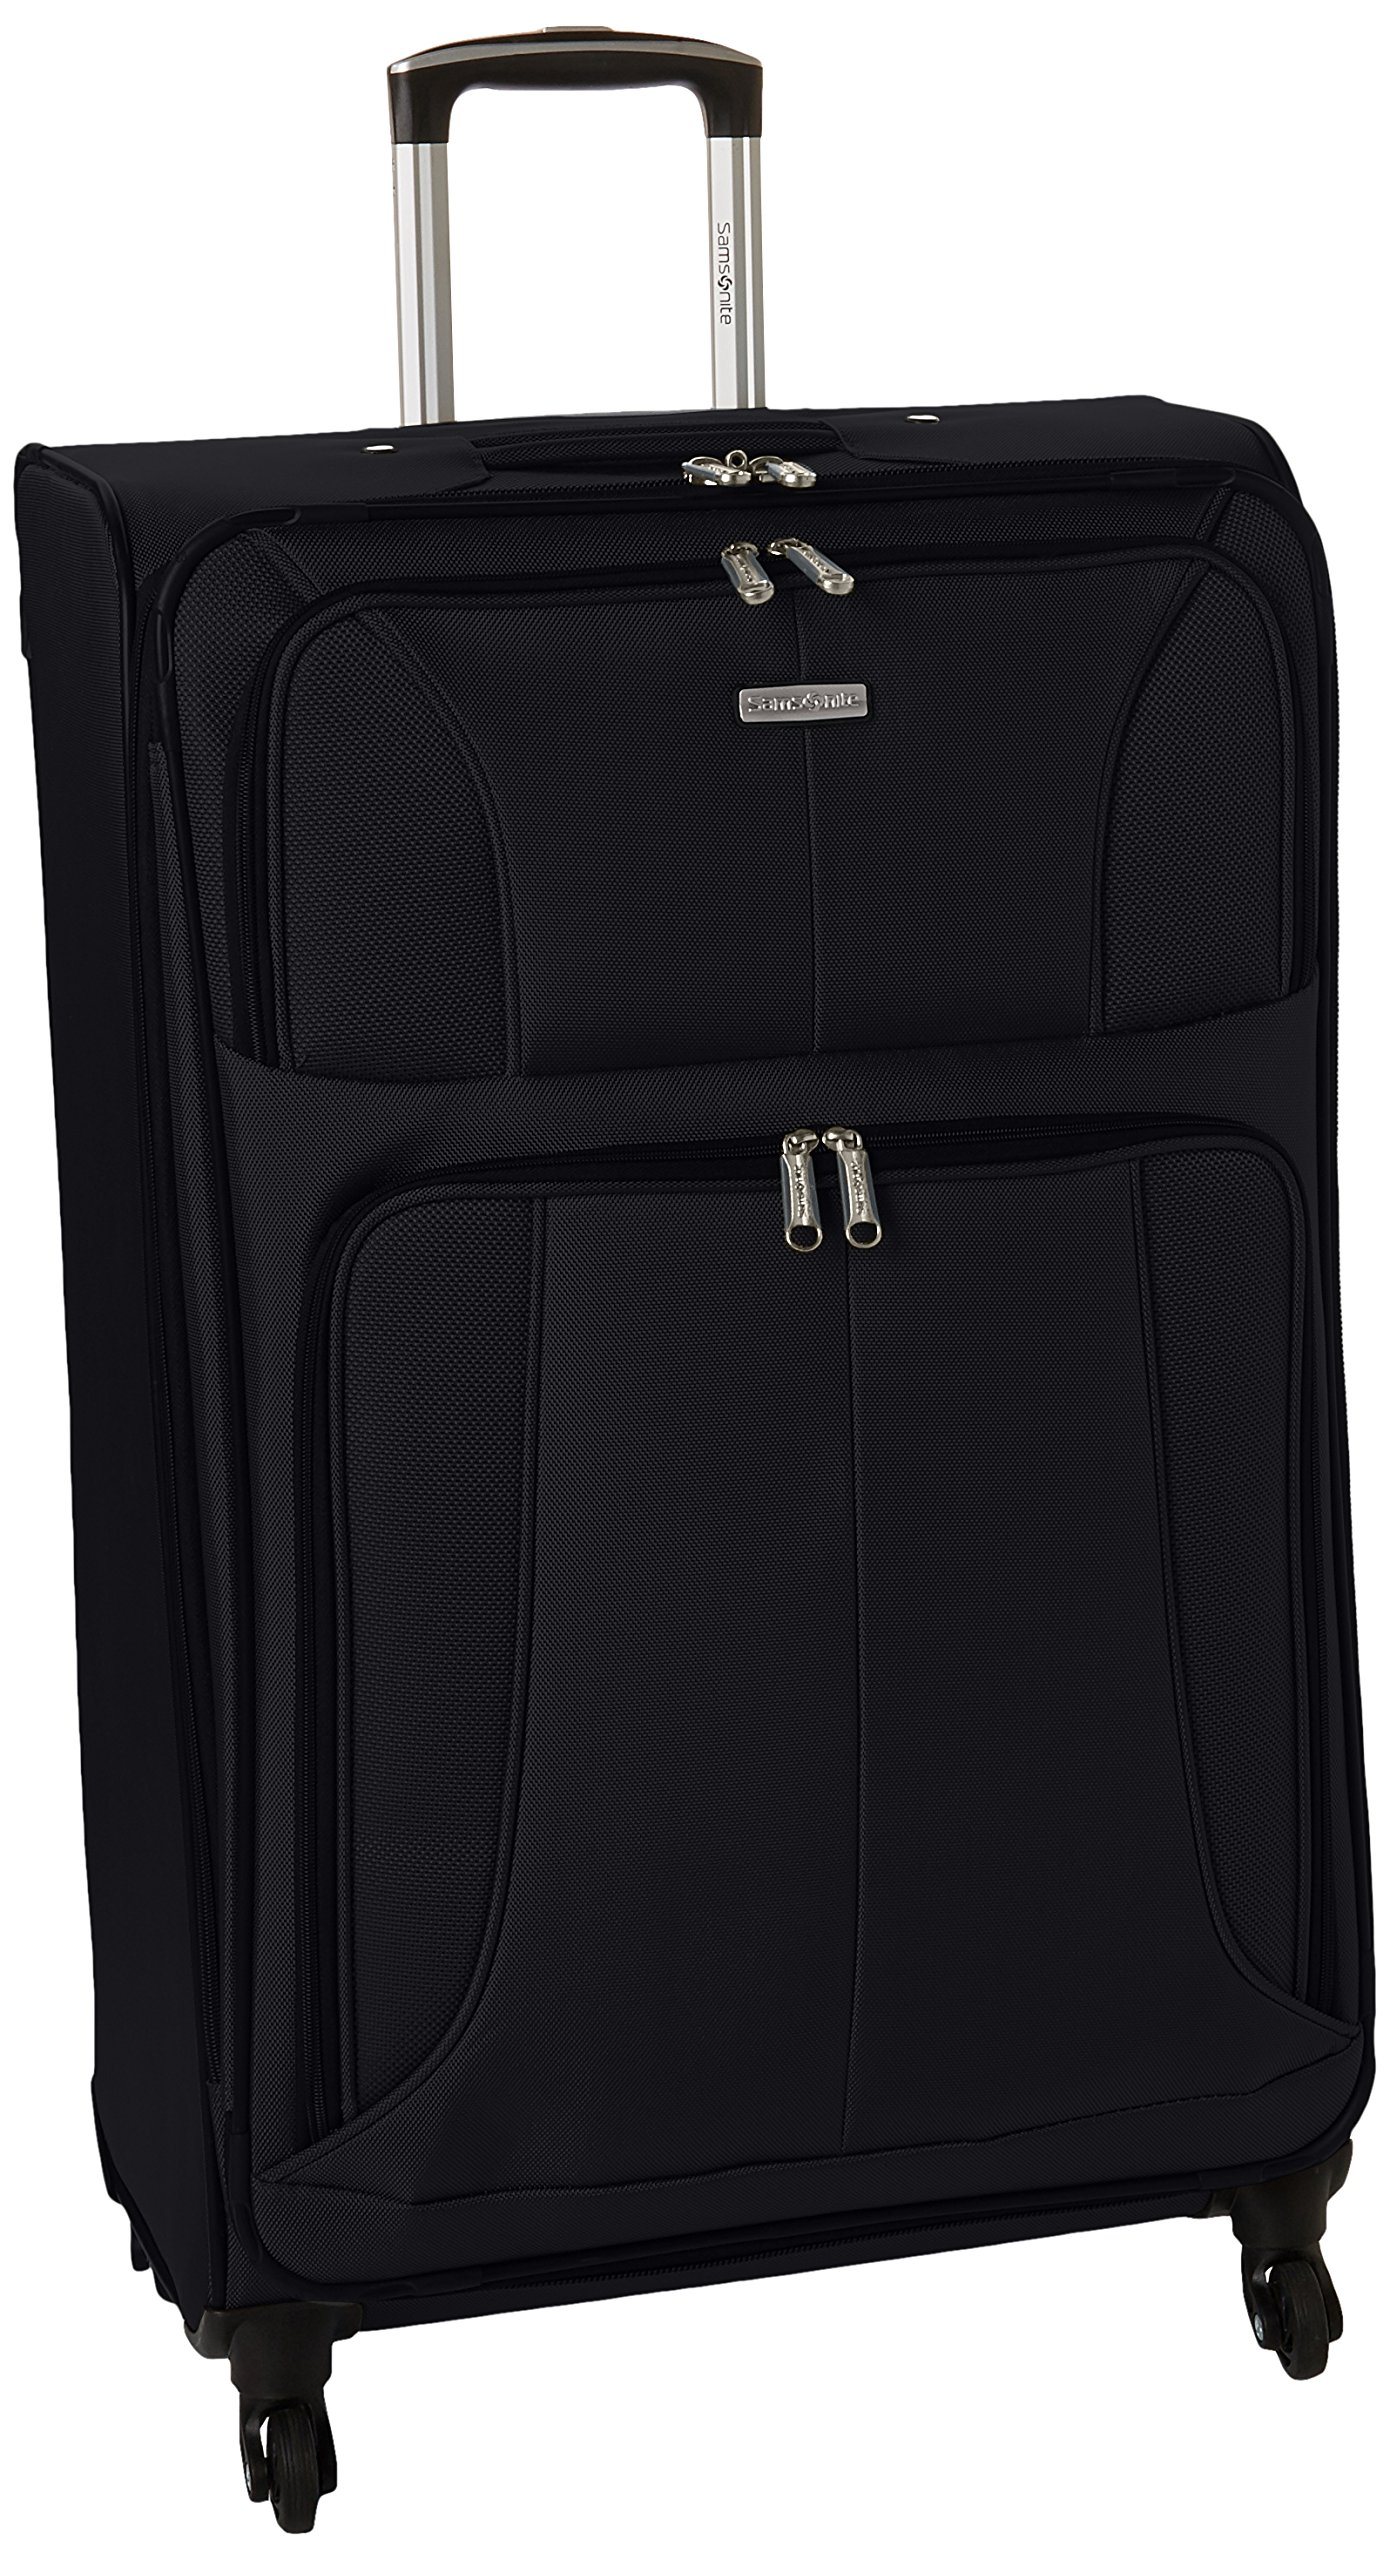 Samsonite Aspire Xlite Expandable Softside Checked Luggage with Spinner Wheels, 25-Inch, Black